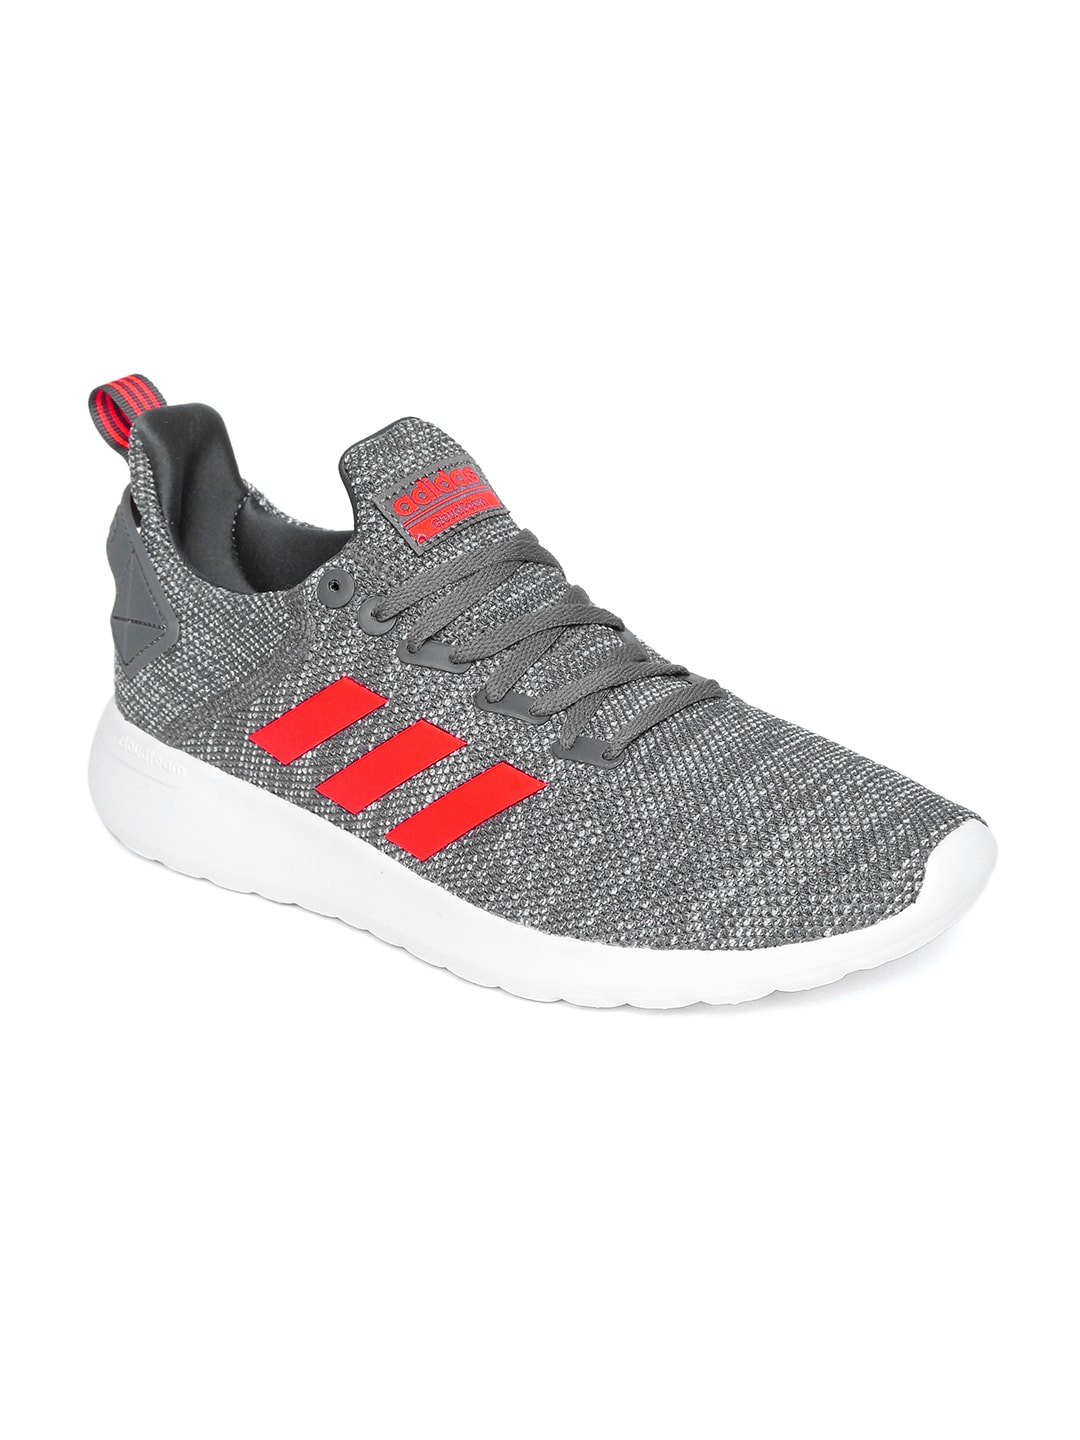 237b54724d6 Sports Shoes for Men - Buy Men Sports Shoes Online in India - Myntra